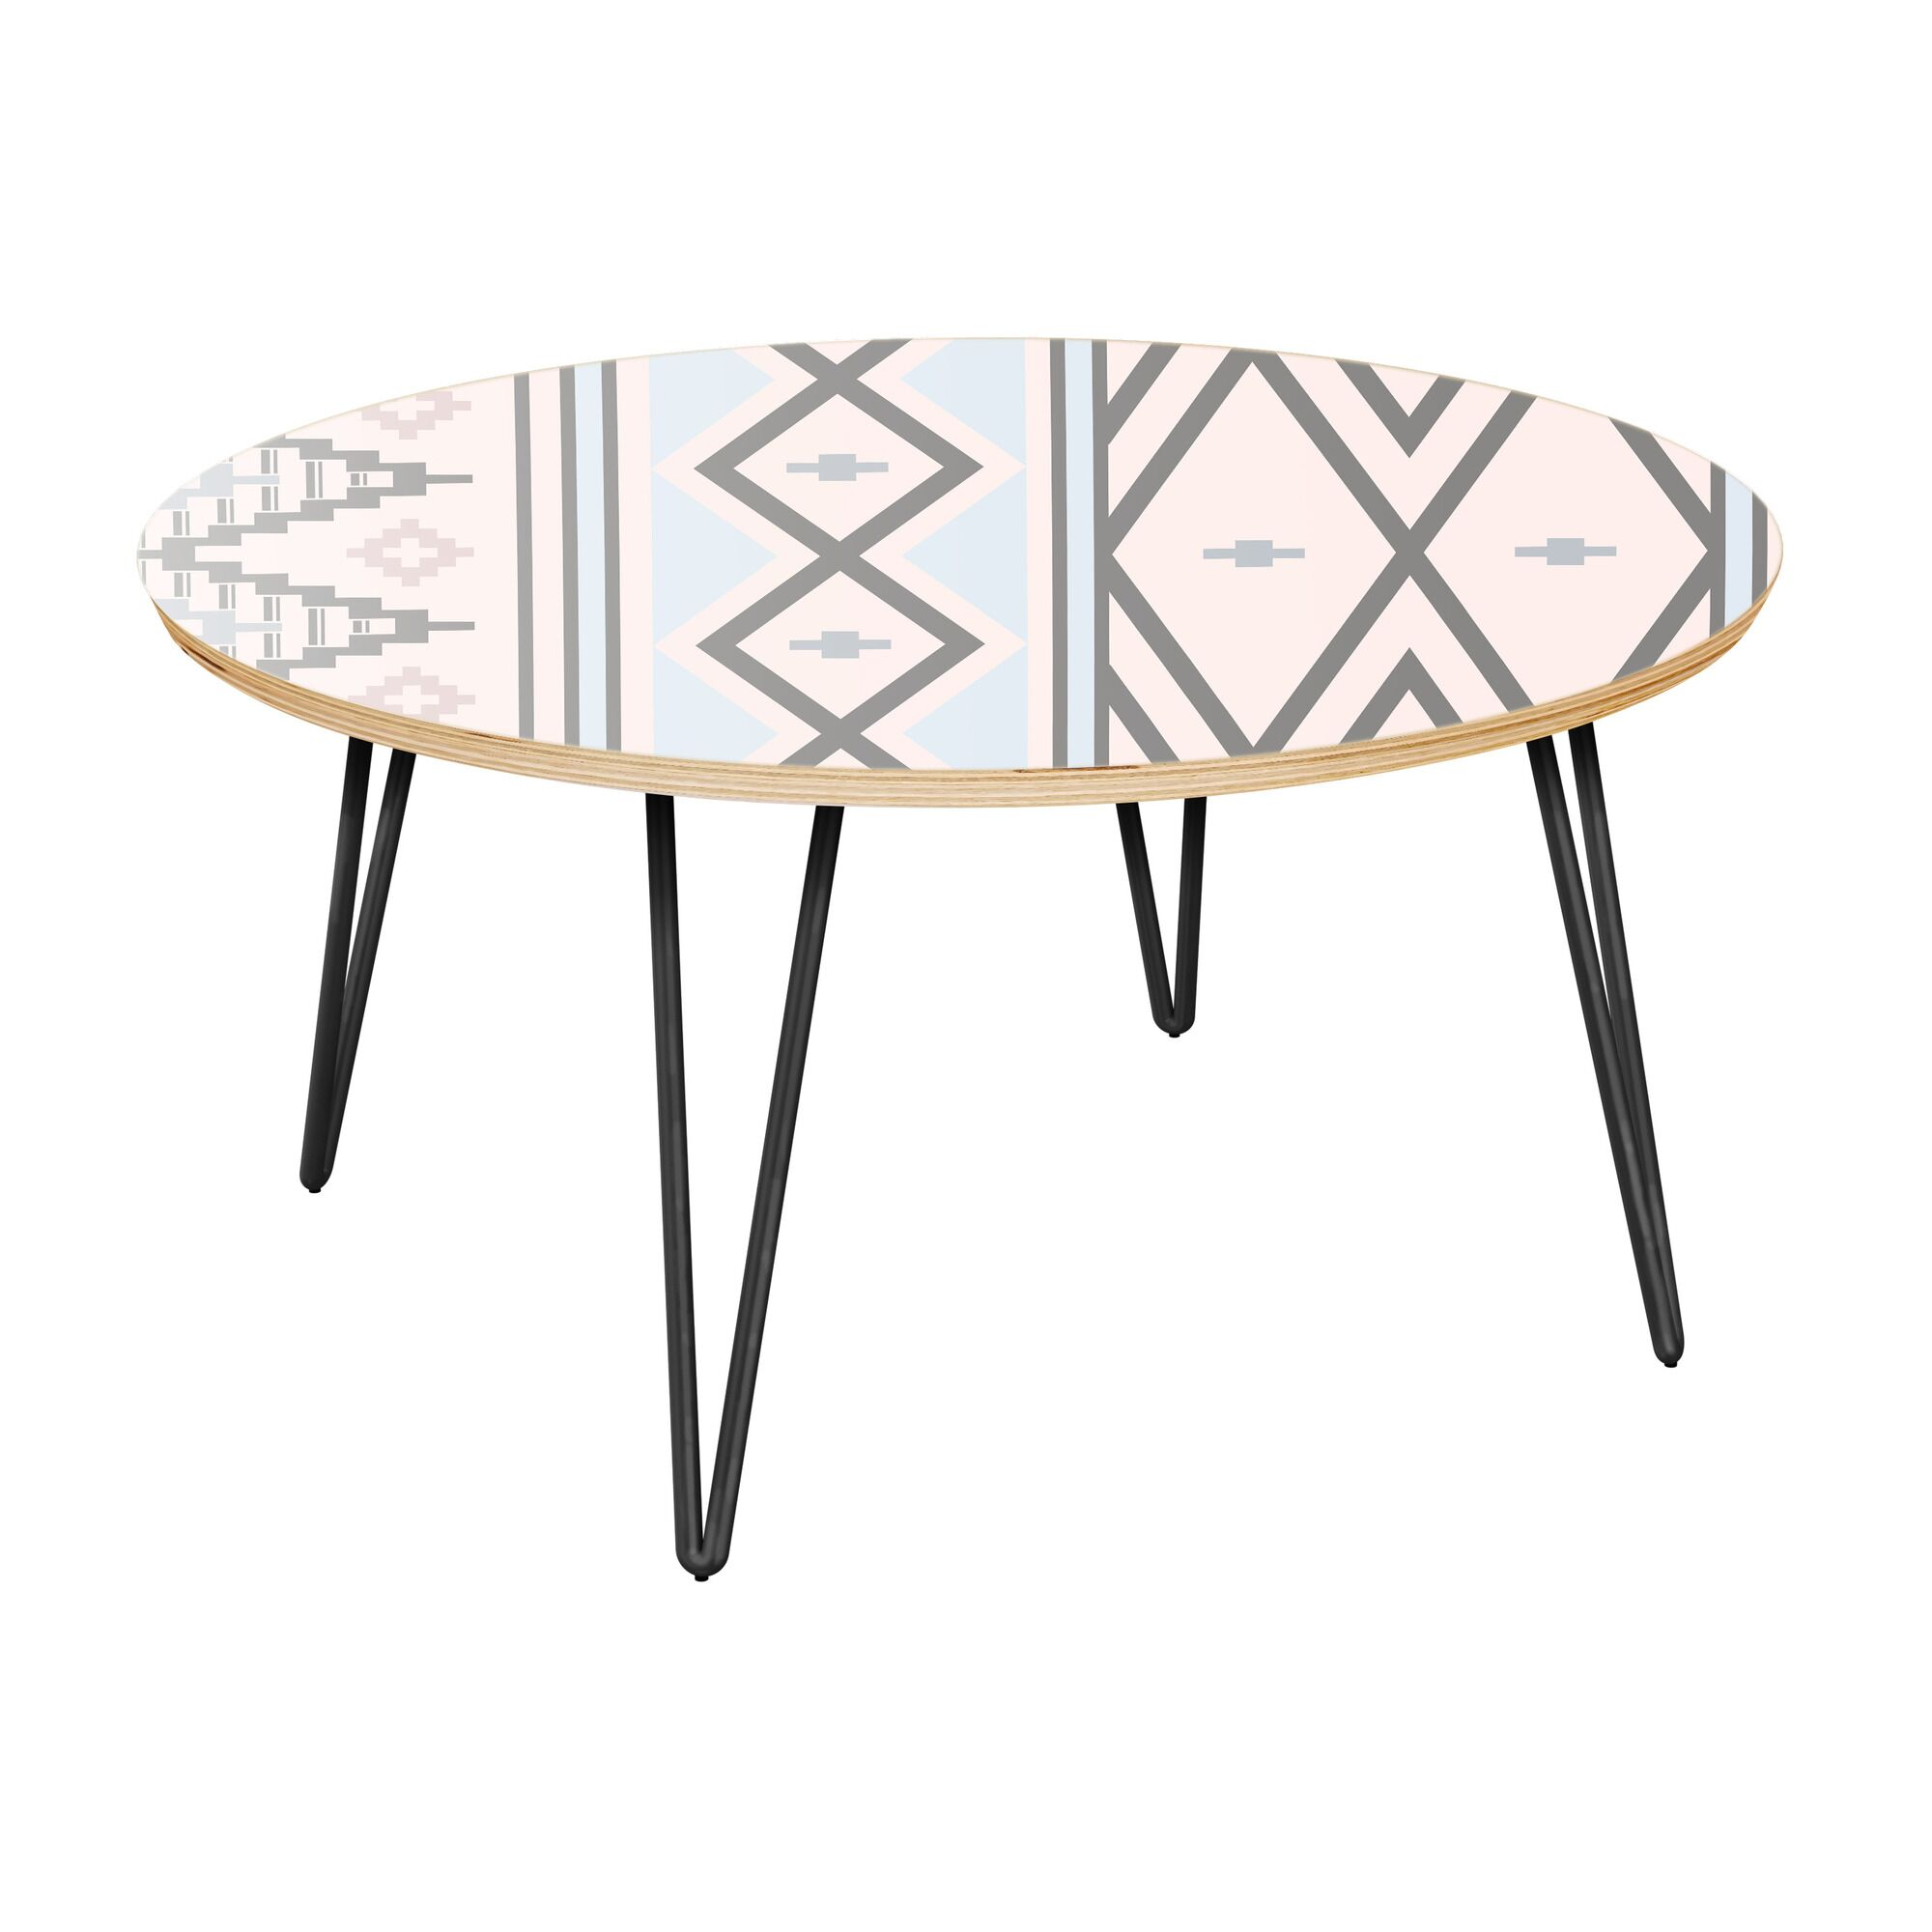 Hursey Coffee Table Table Top Boarder Color: Natural, Table Base Color: Black, Table Top Color: Pink/Blue